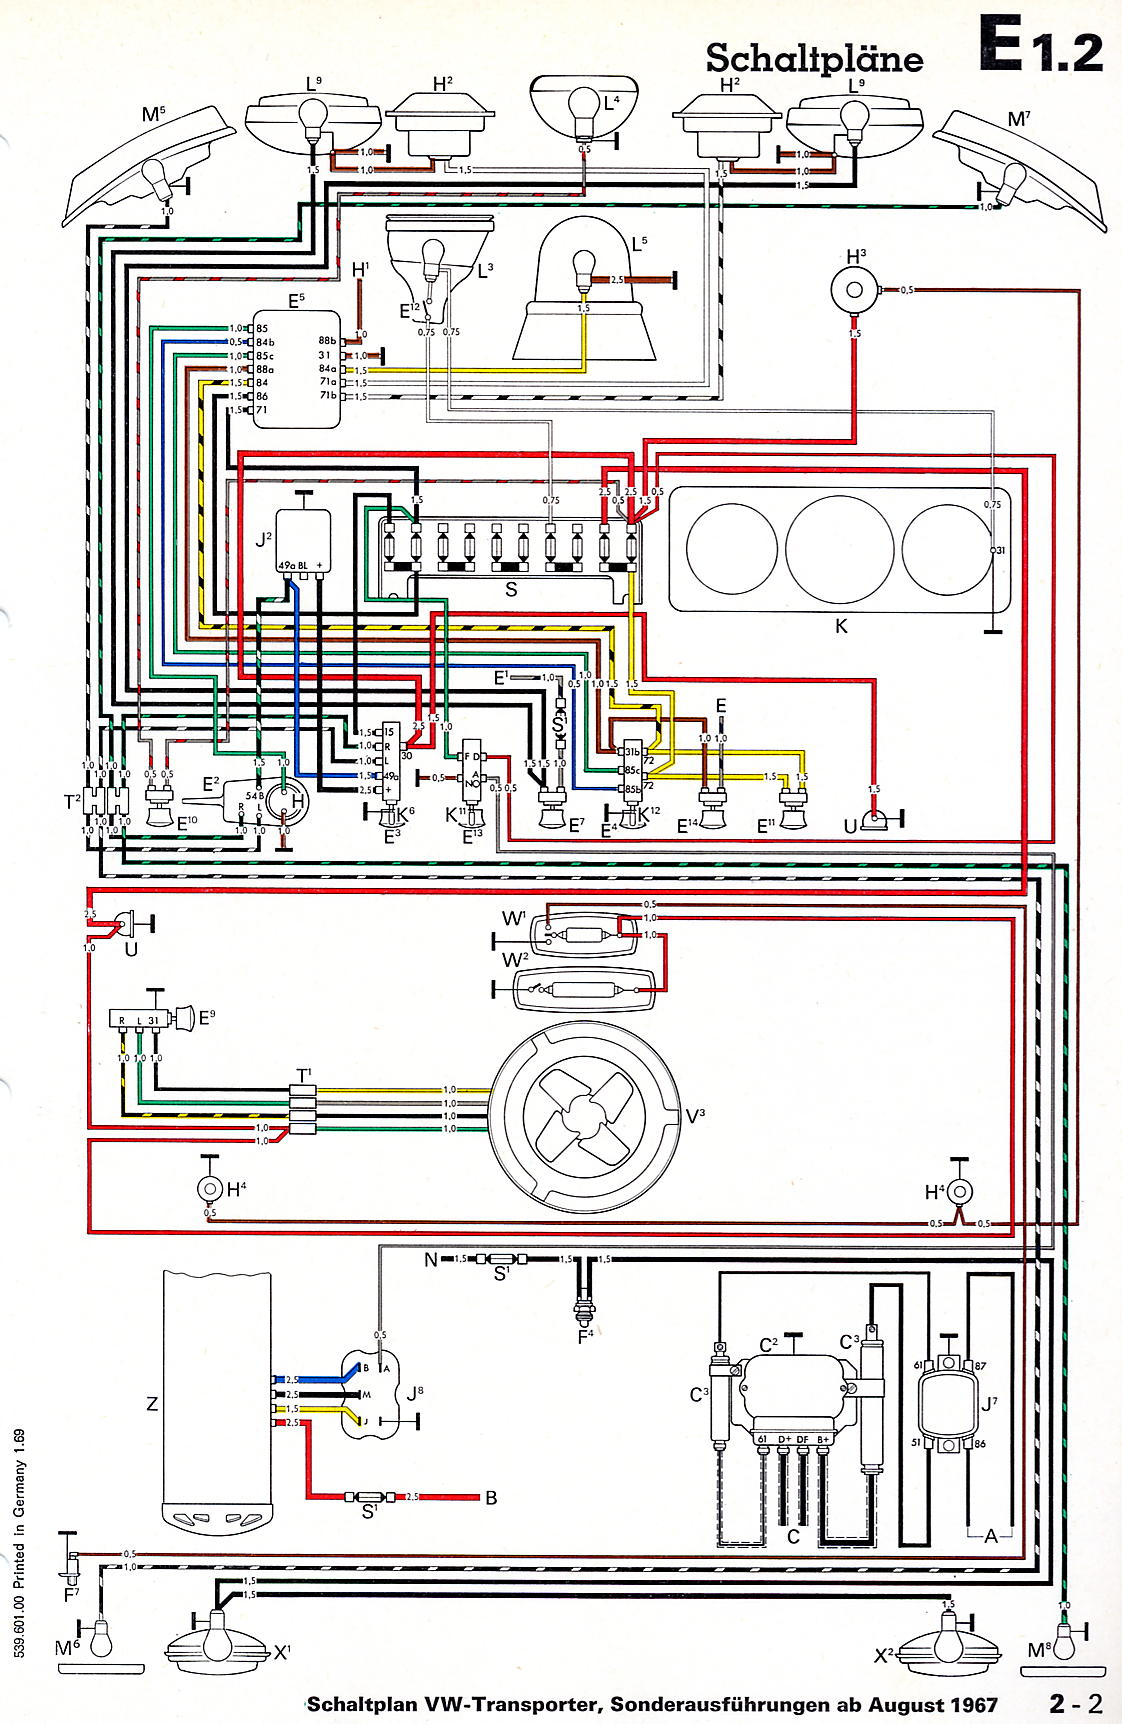 Vw Wiring Diagrams - Wiring Diagram 500 on jaguar s type wiring diagram, vw type 1 maintenance, vw type 1 suspension, vw type 1 fuel pump, vw type 1 fuel gauge, vw type 1 exhaust, vw type 1 air conditioning, vw type 1 generator, vw type 1 fan belt, vw type 1 dimensions, vw type 1 body, vw type 1 flywheel, vw type 1 starter, vw type 1 brakes, vw type 1 wheels, vw type 1 frame, volkswagen type 3 wiring diagram, vw type 1 torque specs,